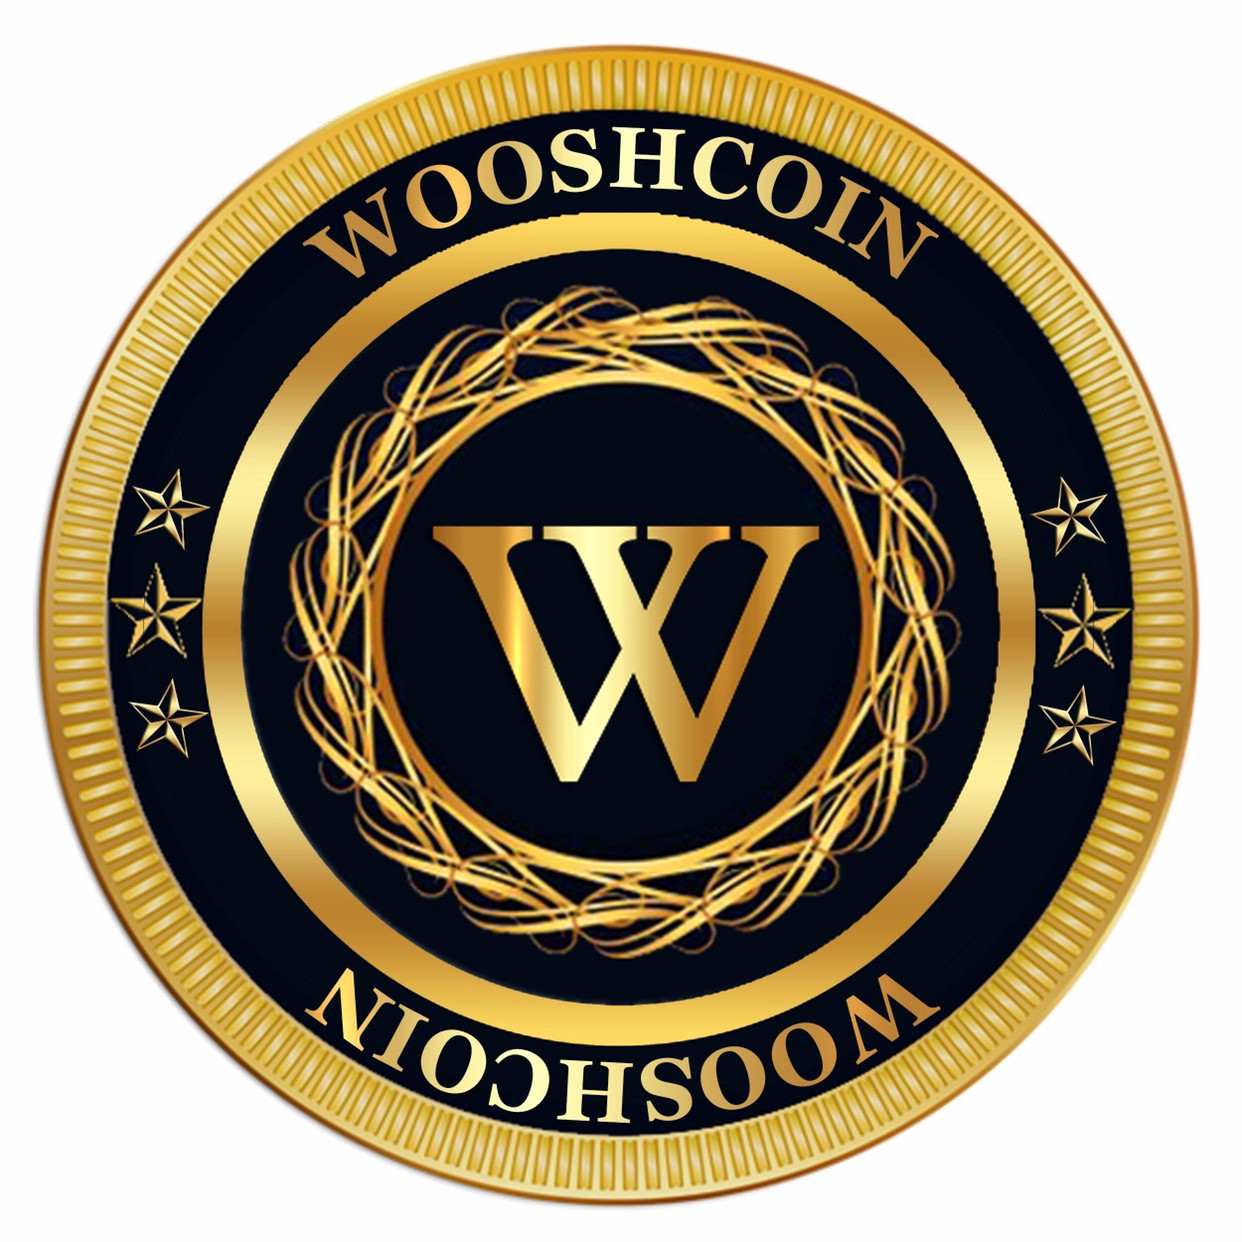 PEER TO PEER REVOLUTION. WooshCoin (XWO) is a decentralized€ | by WooshCoin  (XWO) | Medium